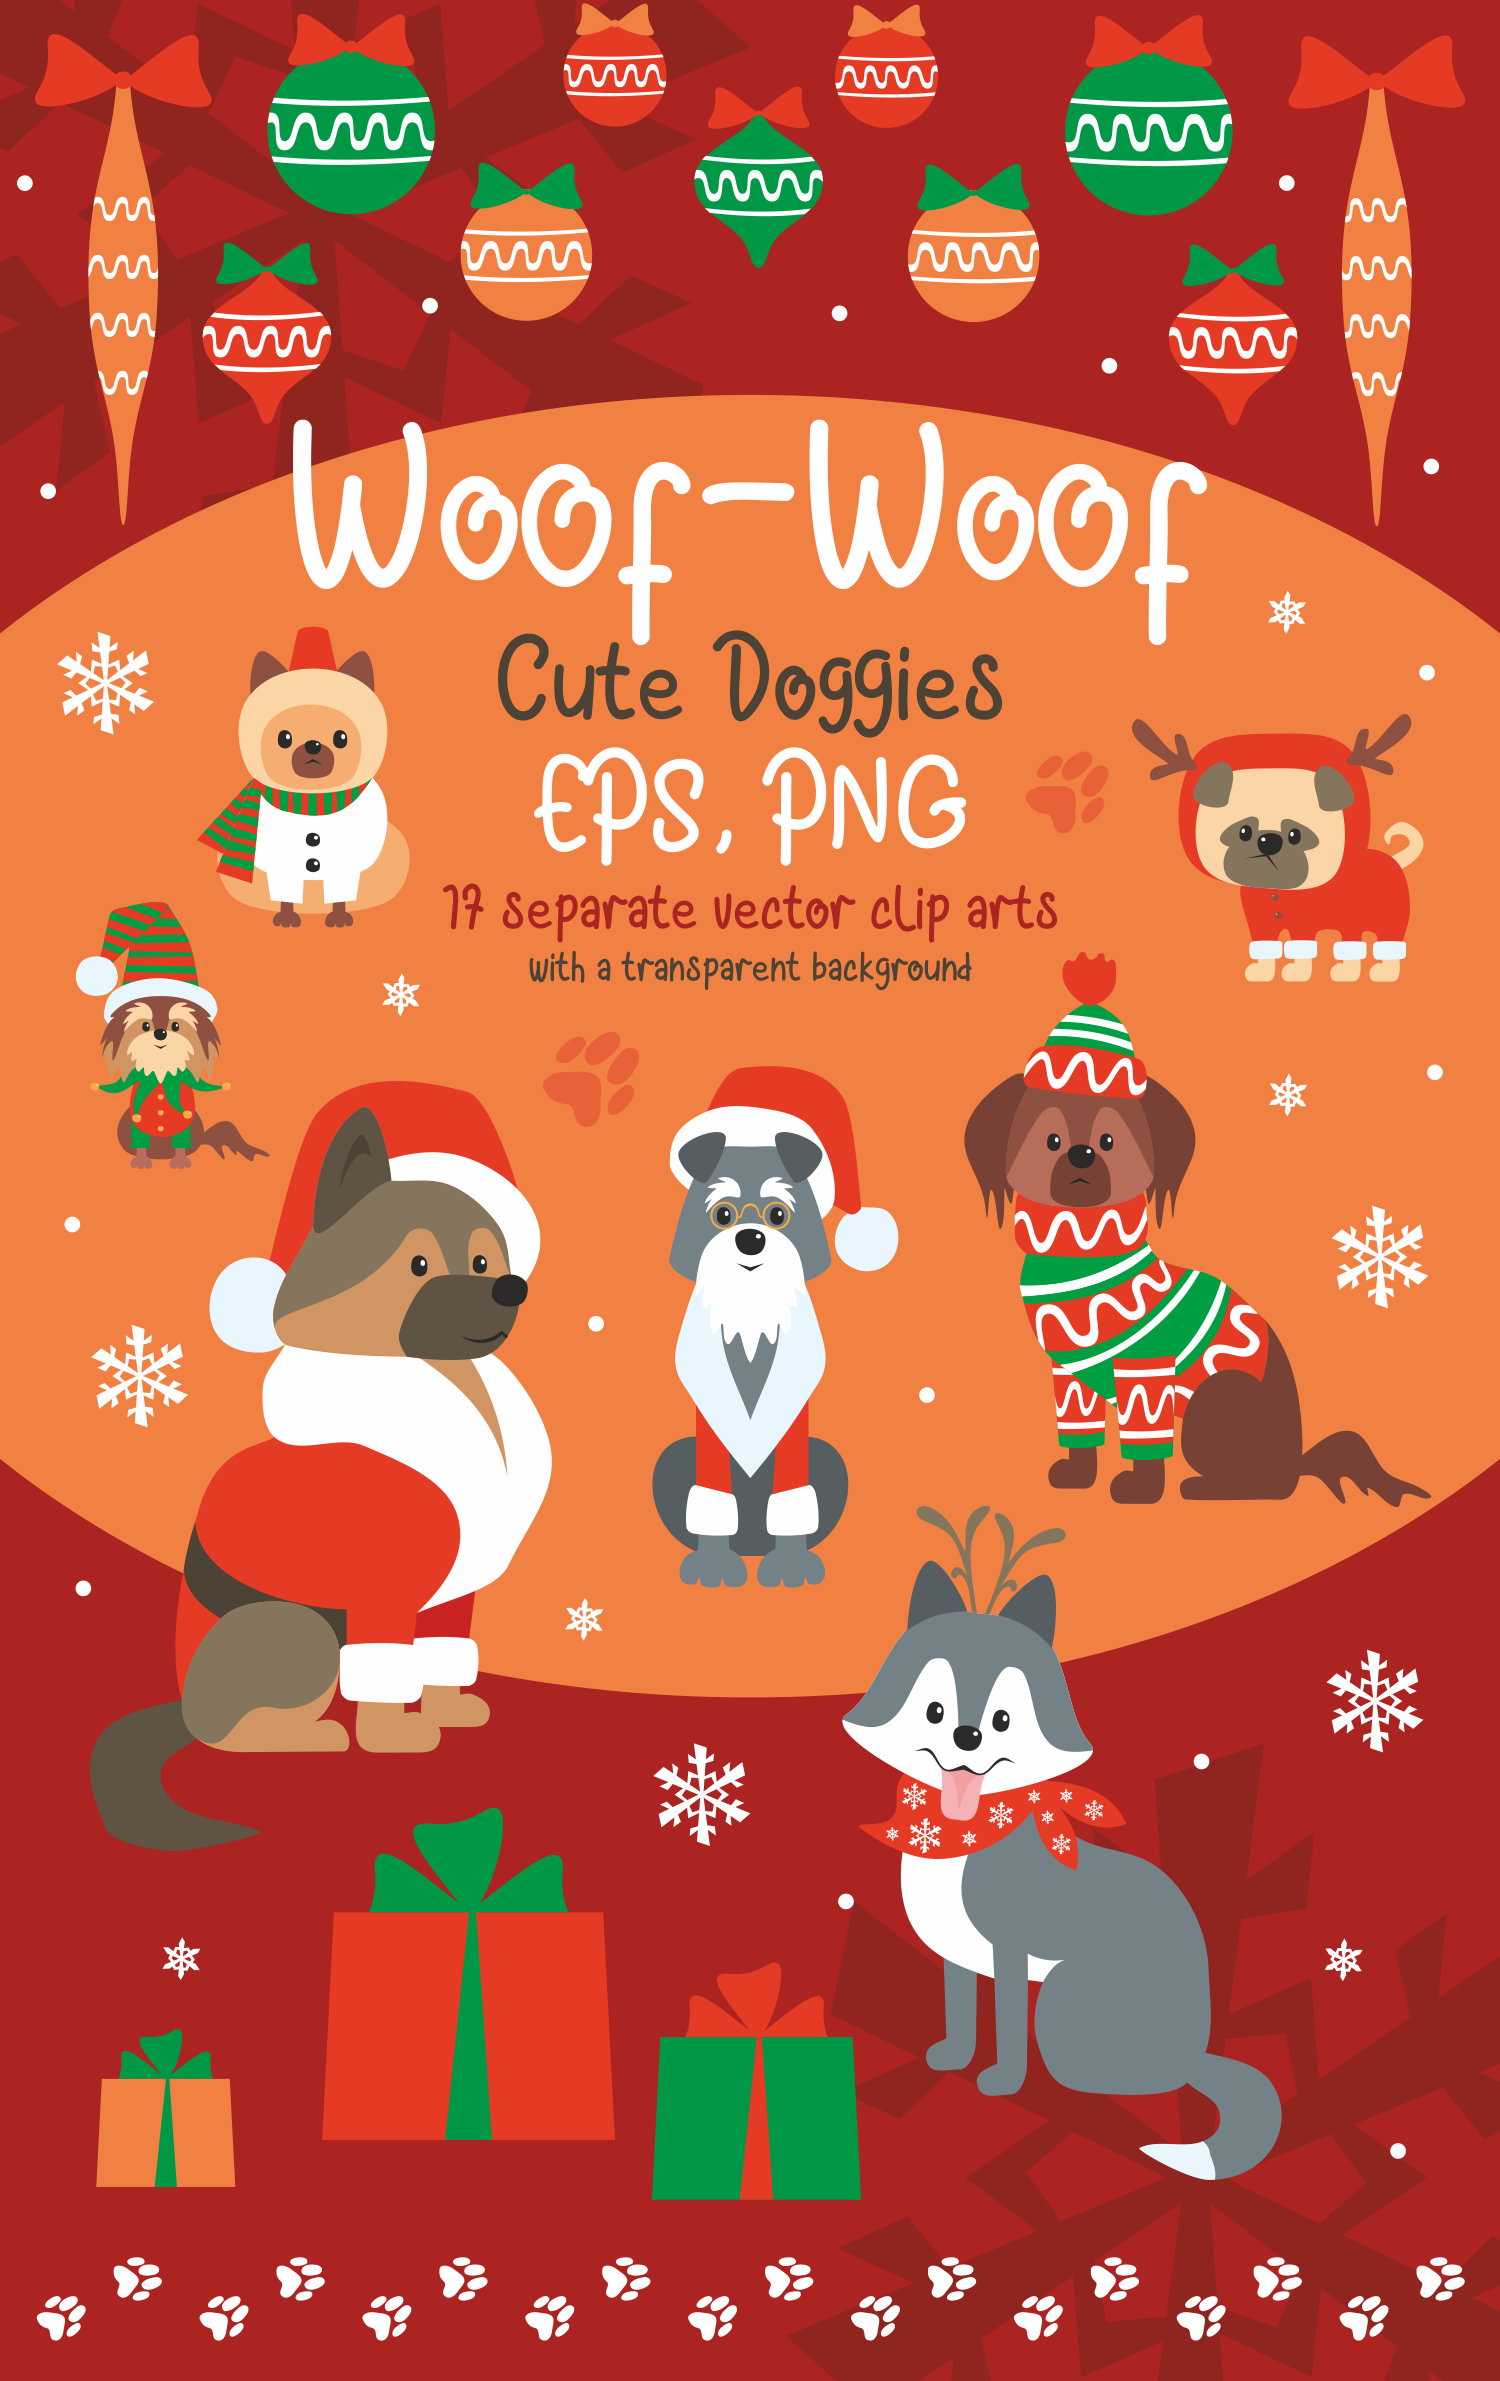 Woof. Cute doggies in Christmas costumes. example image 10